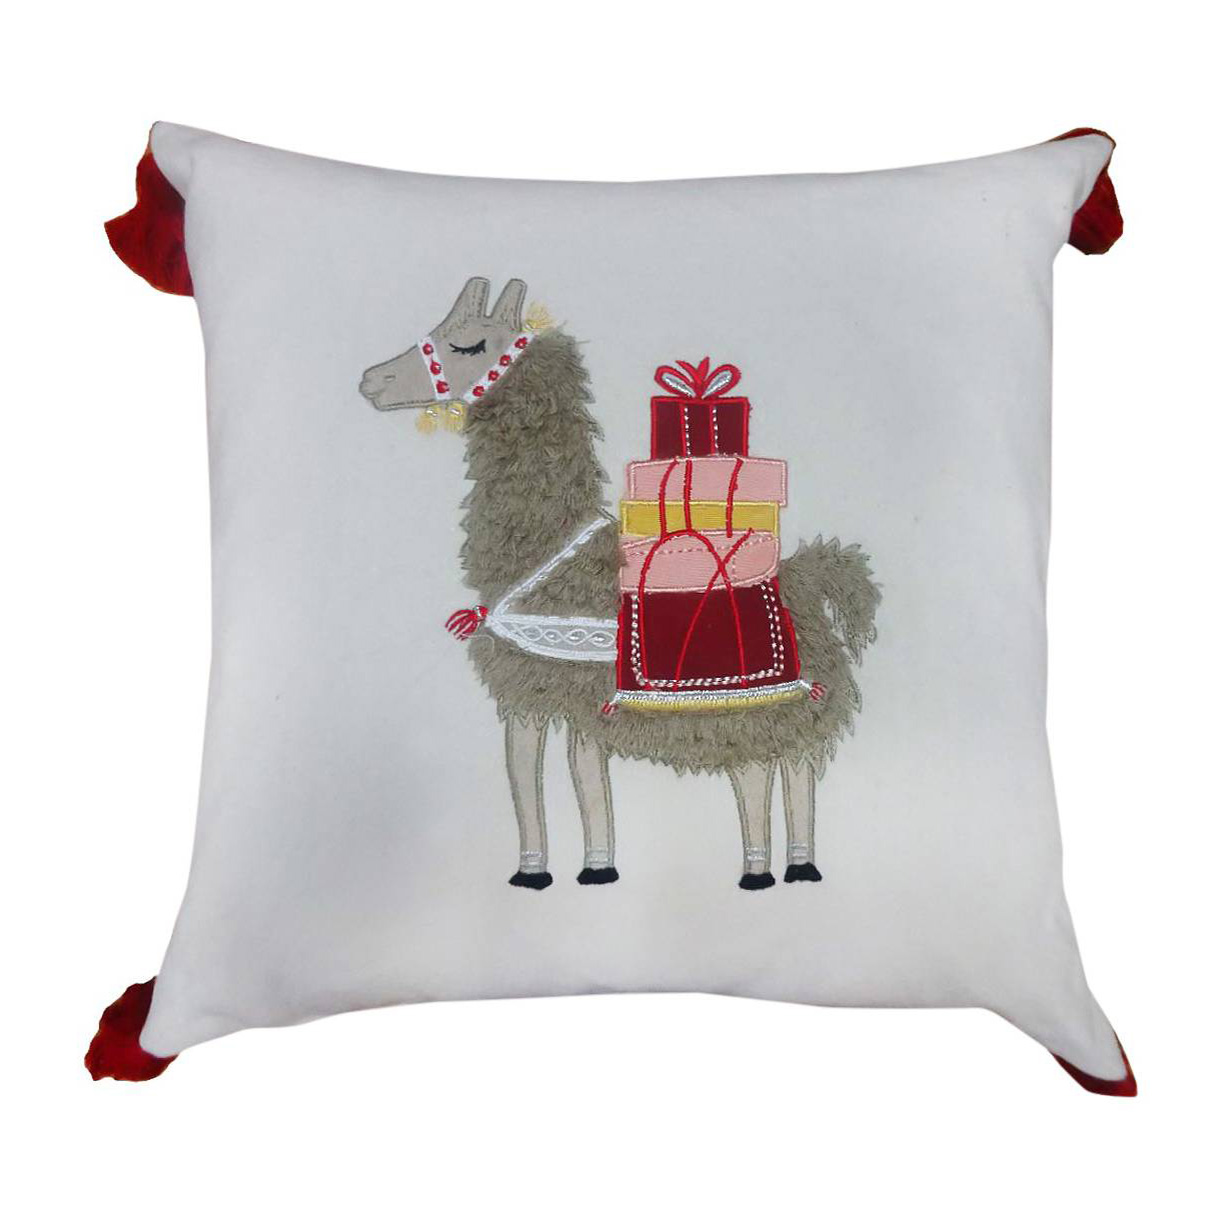 threshold embroidered llama throw pillow 1999 - Llama Christmas Decoration